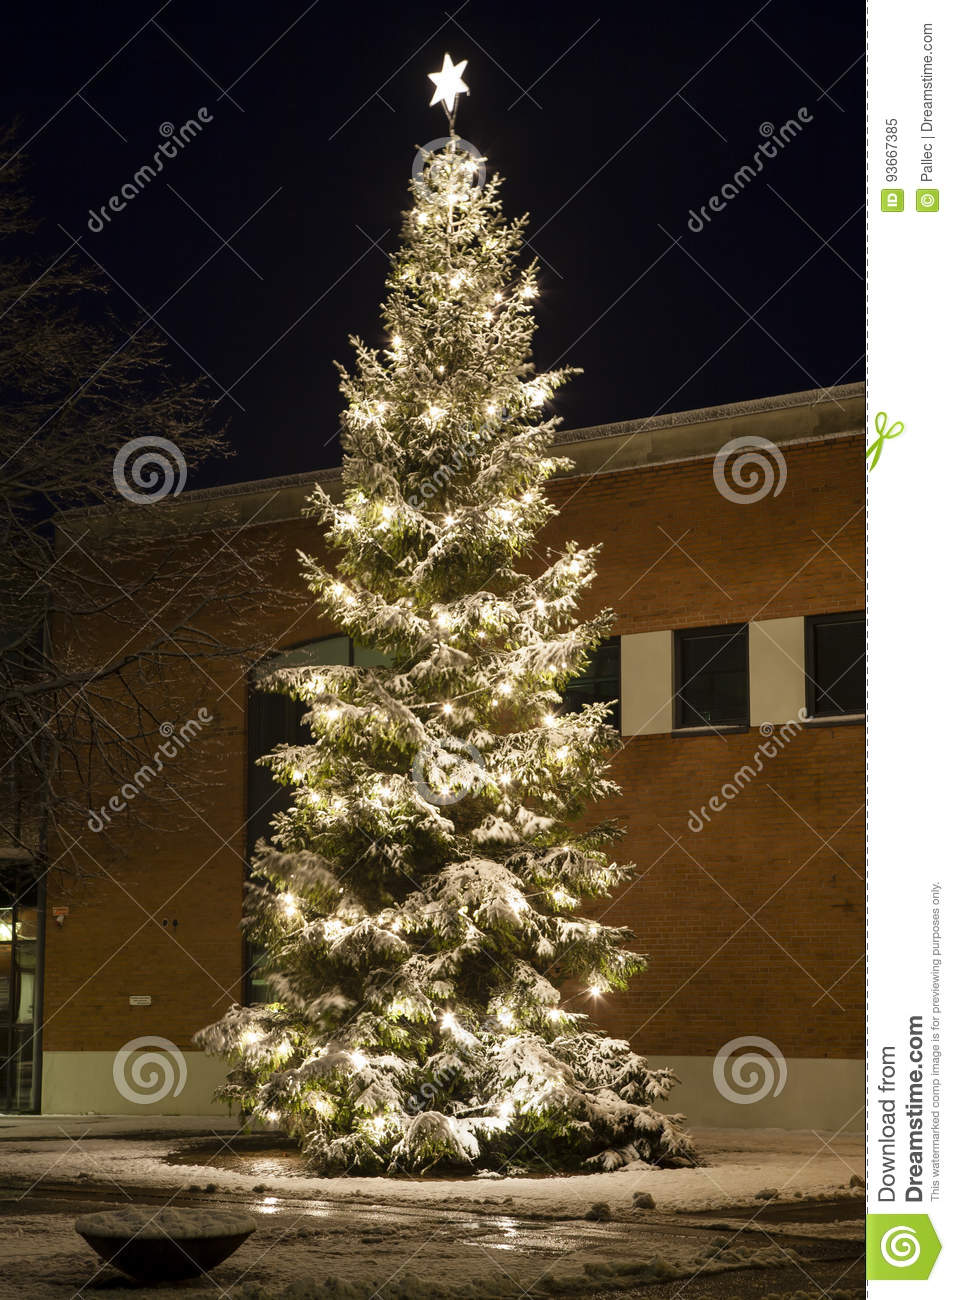 Christmas Tree Outside.Christmas Tree Outside With Snow And Lights Stock Image